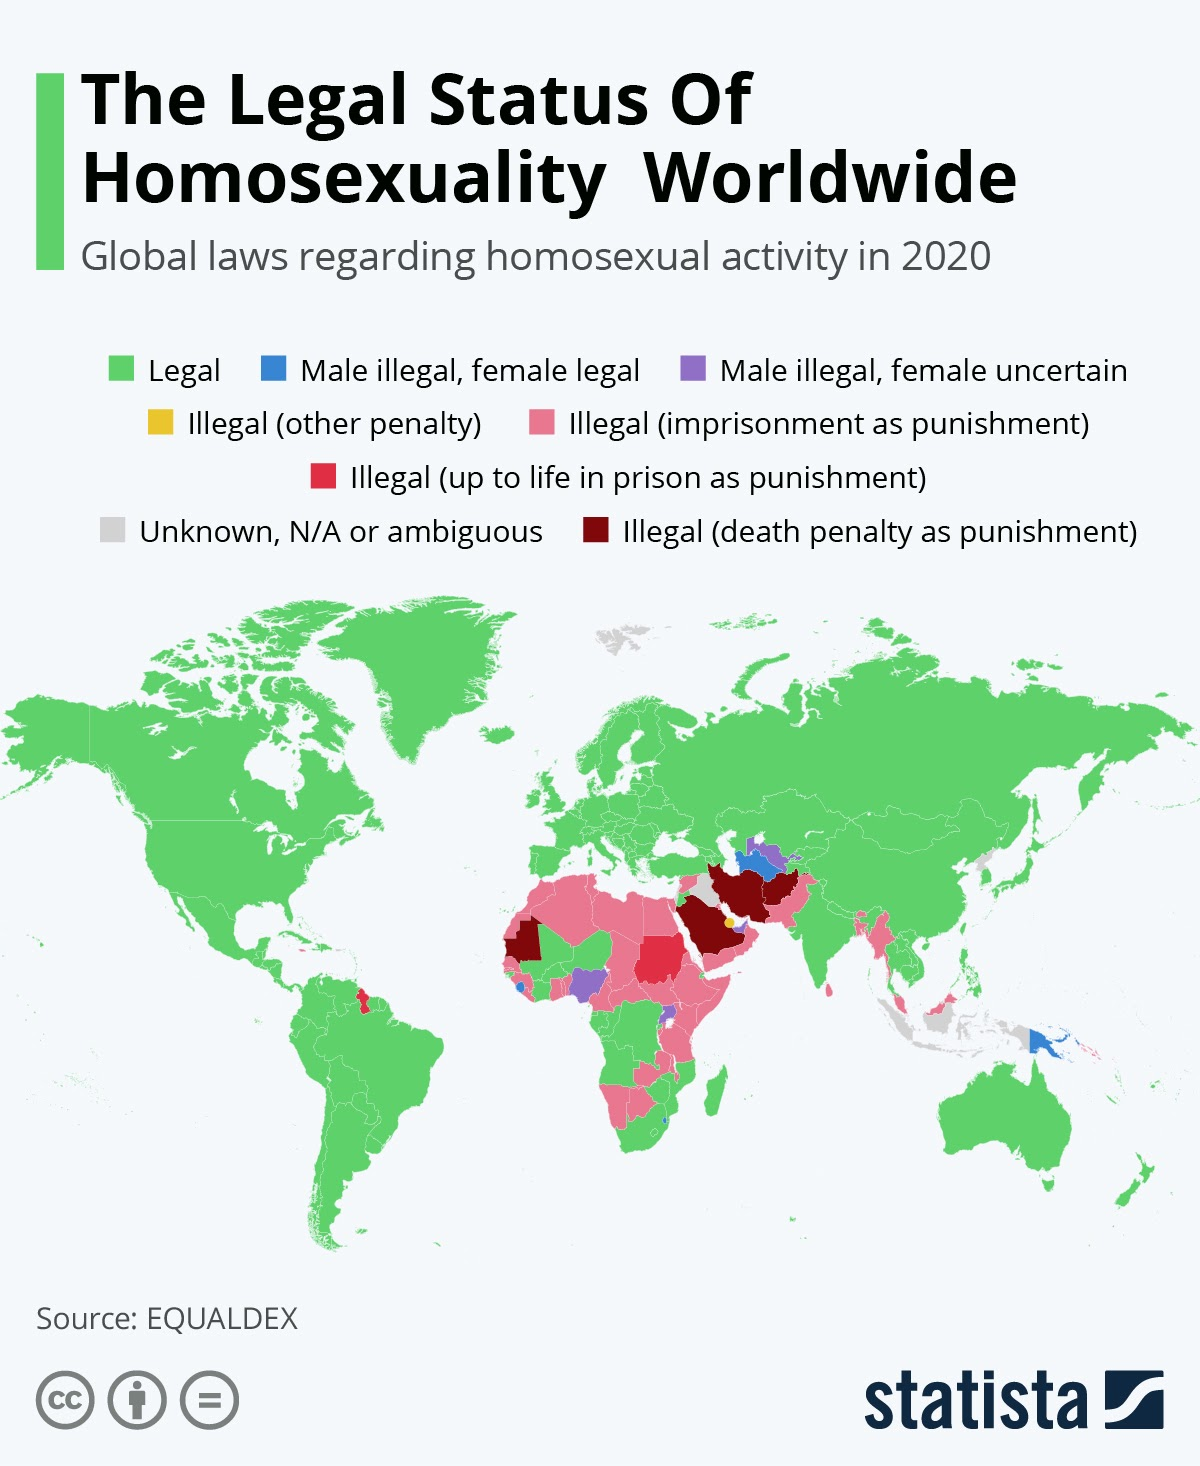 The Legal Status Of Homosexuality Worldwide #infographic